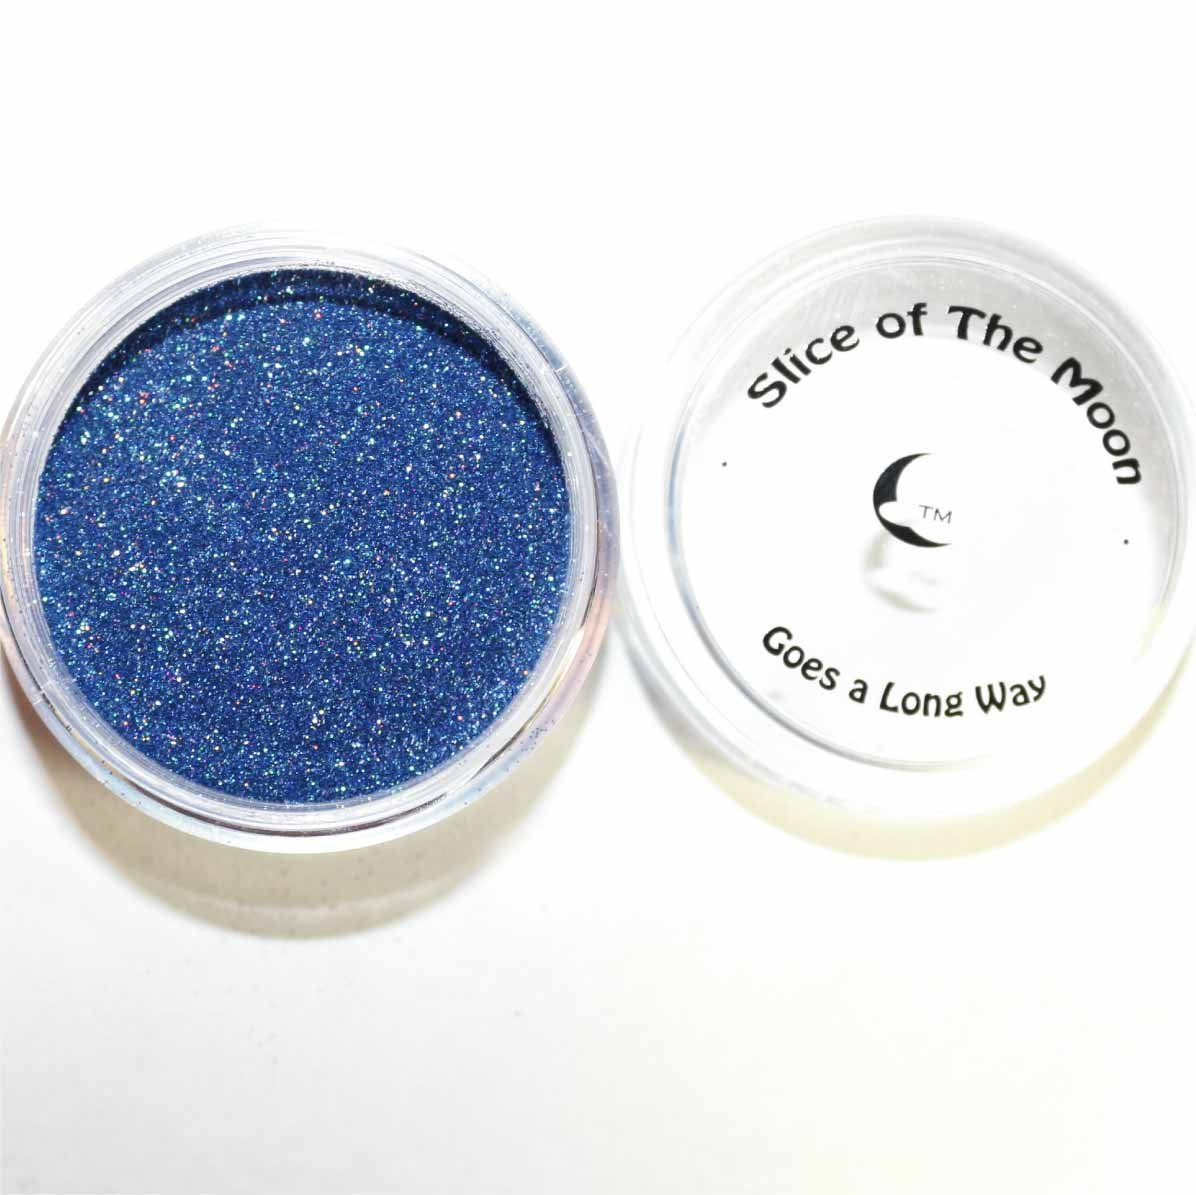 Holographic Dark Blue Glitter Powder 15g – Non-solvent Glitter Powder, Slice of the Moon